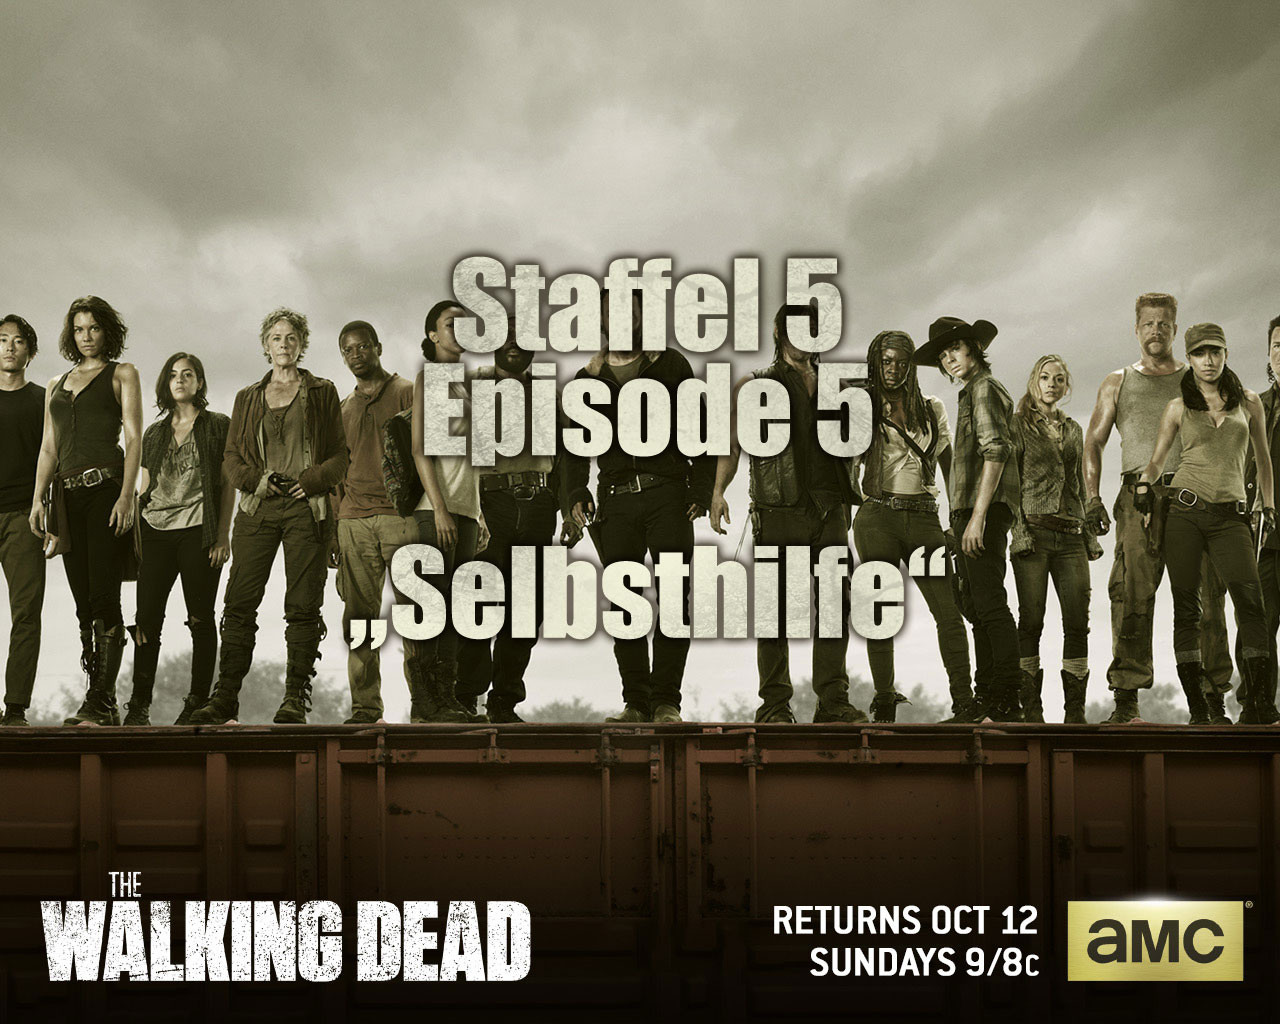 The Walking Dead S05E05 – Selbsthilfe